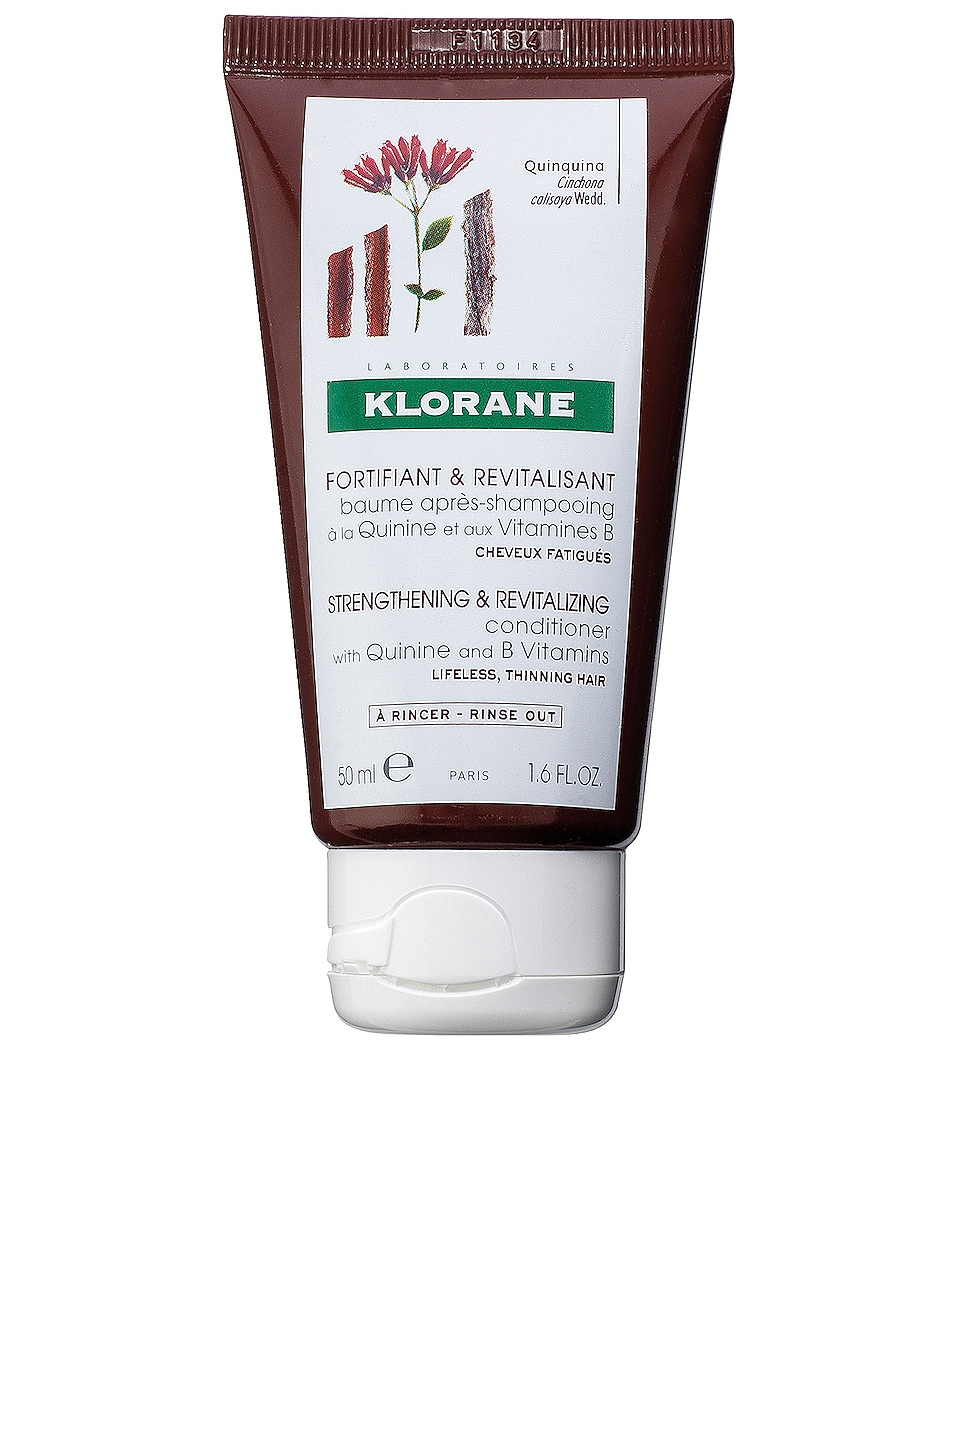 Klorane Travel Conditioner with Quinine and B Vitamins